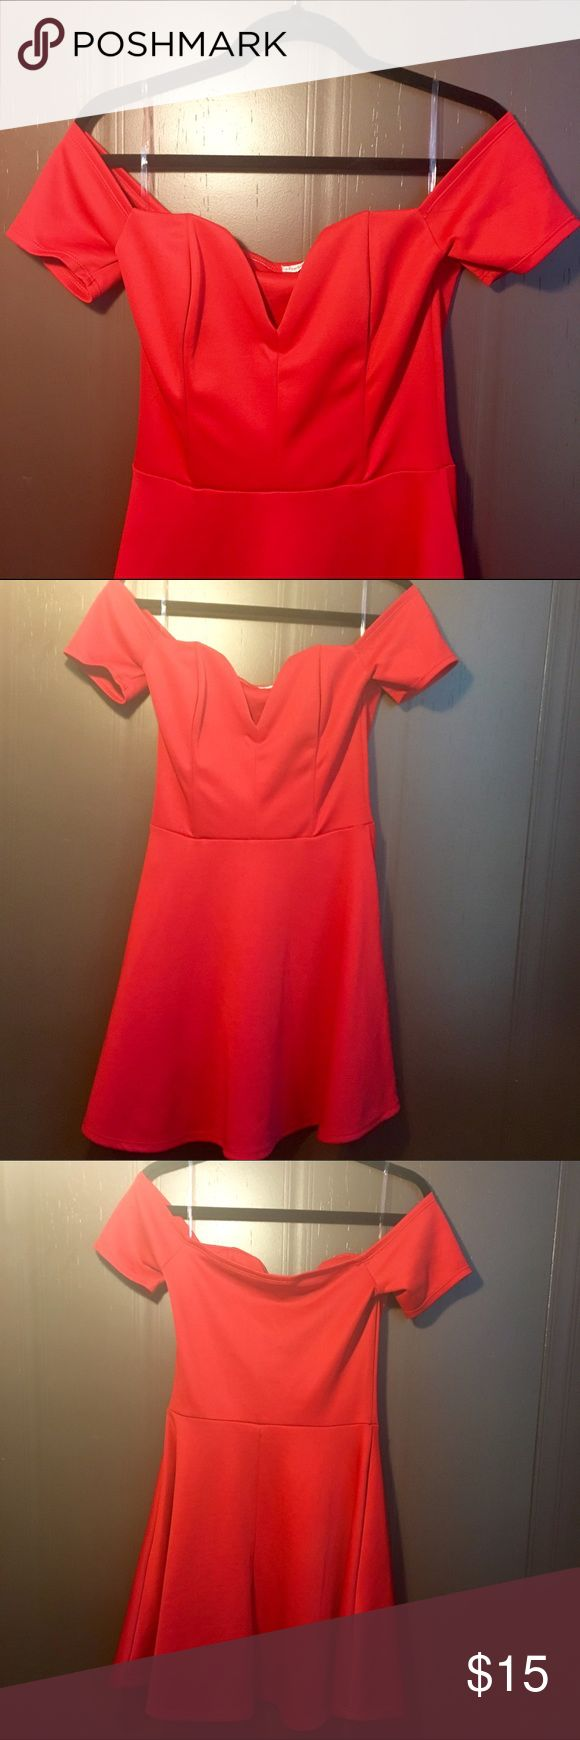 Red off shoulder dress Beautiful red off the shoulder dress with v neck! Size large, and would make a beautiful date night/ formal/ Me Before You costume dress. Charlotte Russe Dresses Strapless